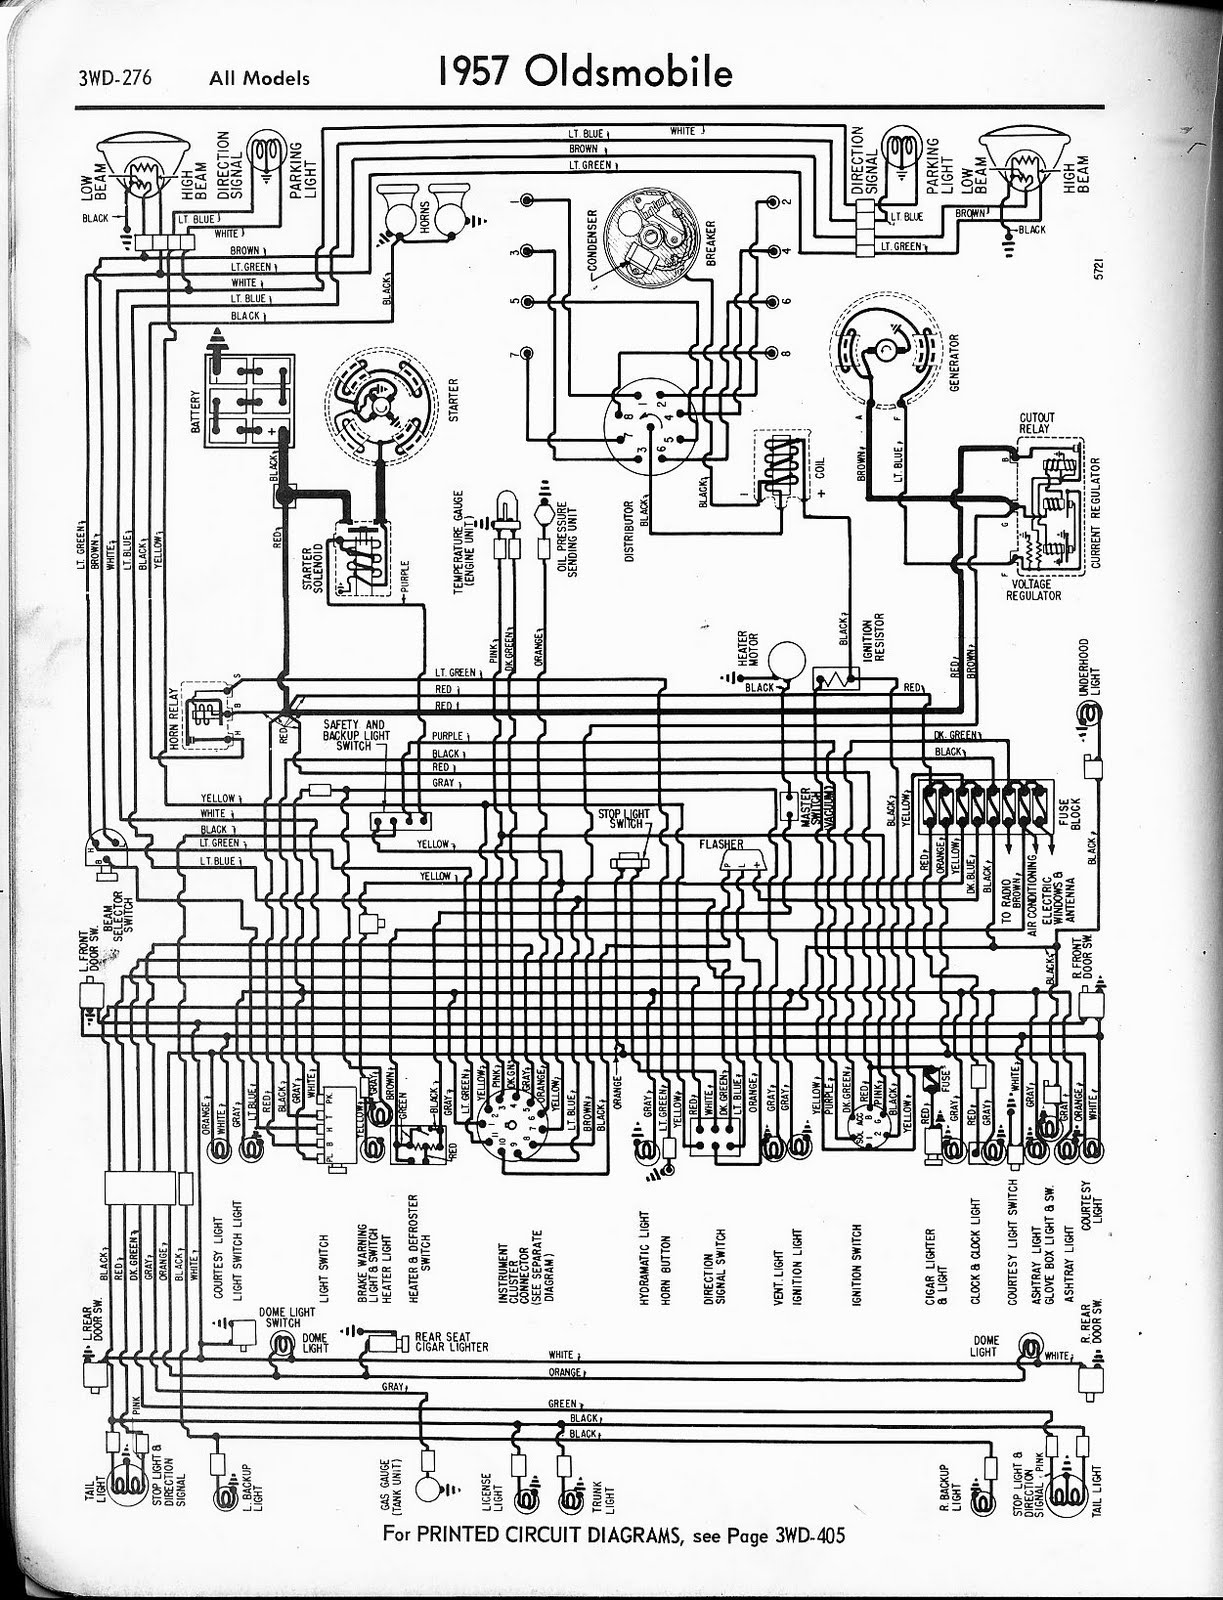 1970 Plymouth Alternator Wiring Diagram Block And Schematic Diagrams Chrysler Images Gallery